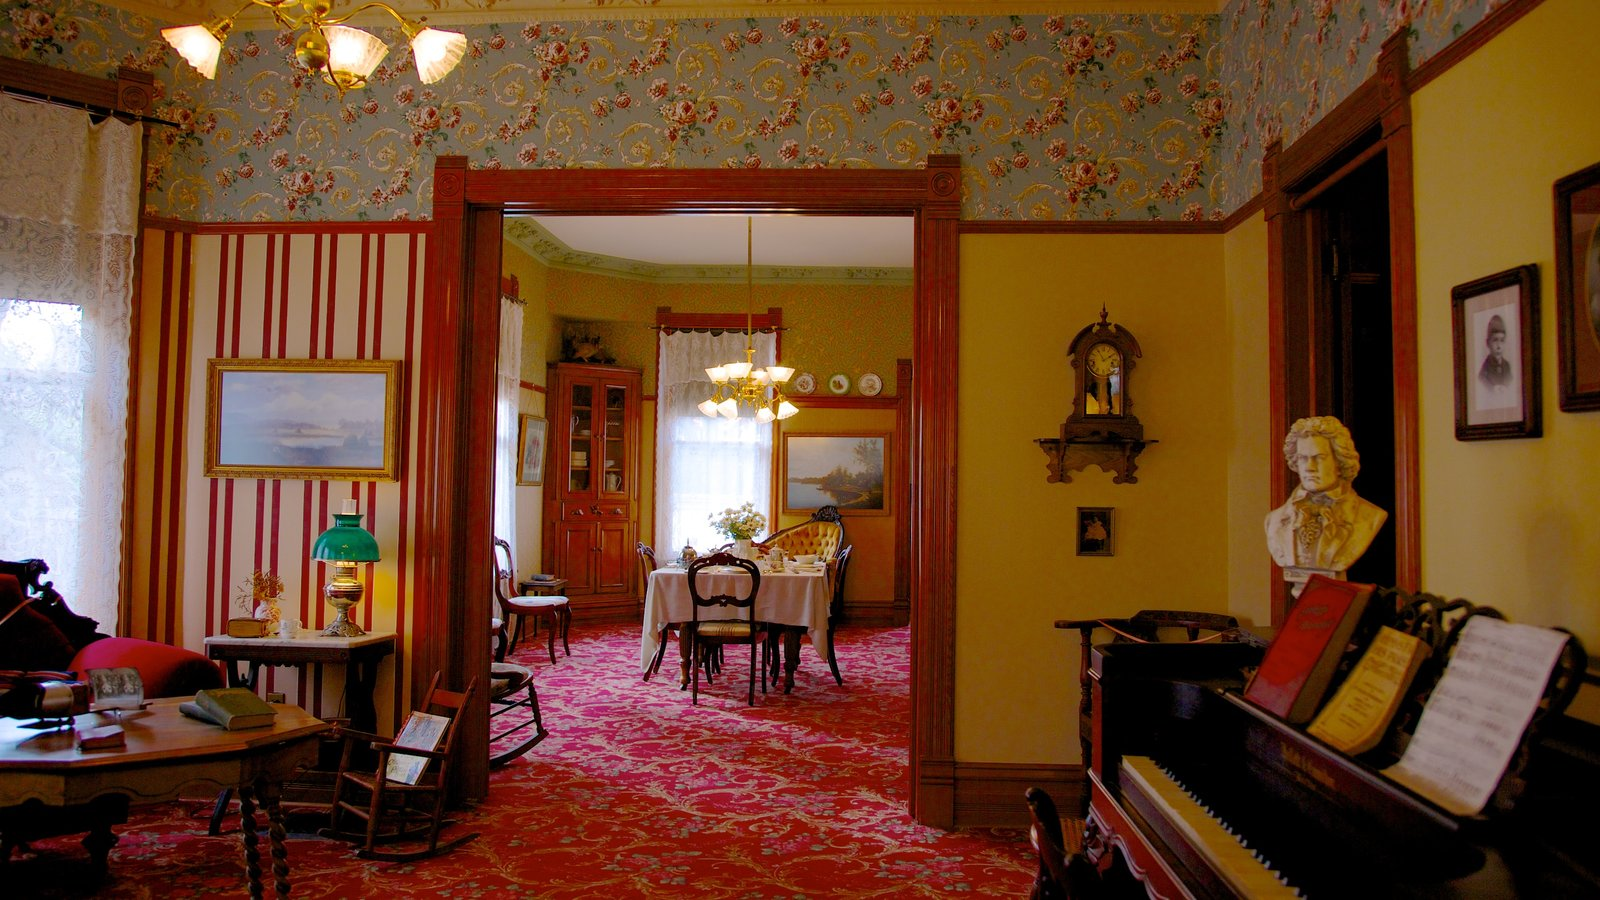 Ernest Hemingway Museum And House Featuring Interior Views